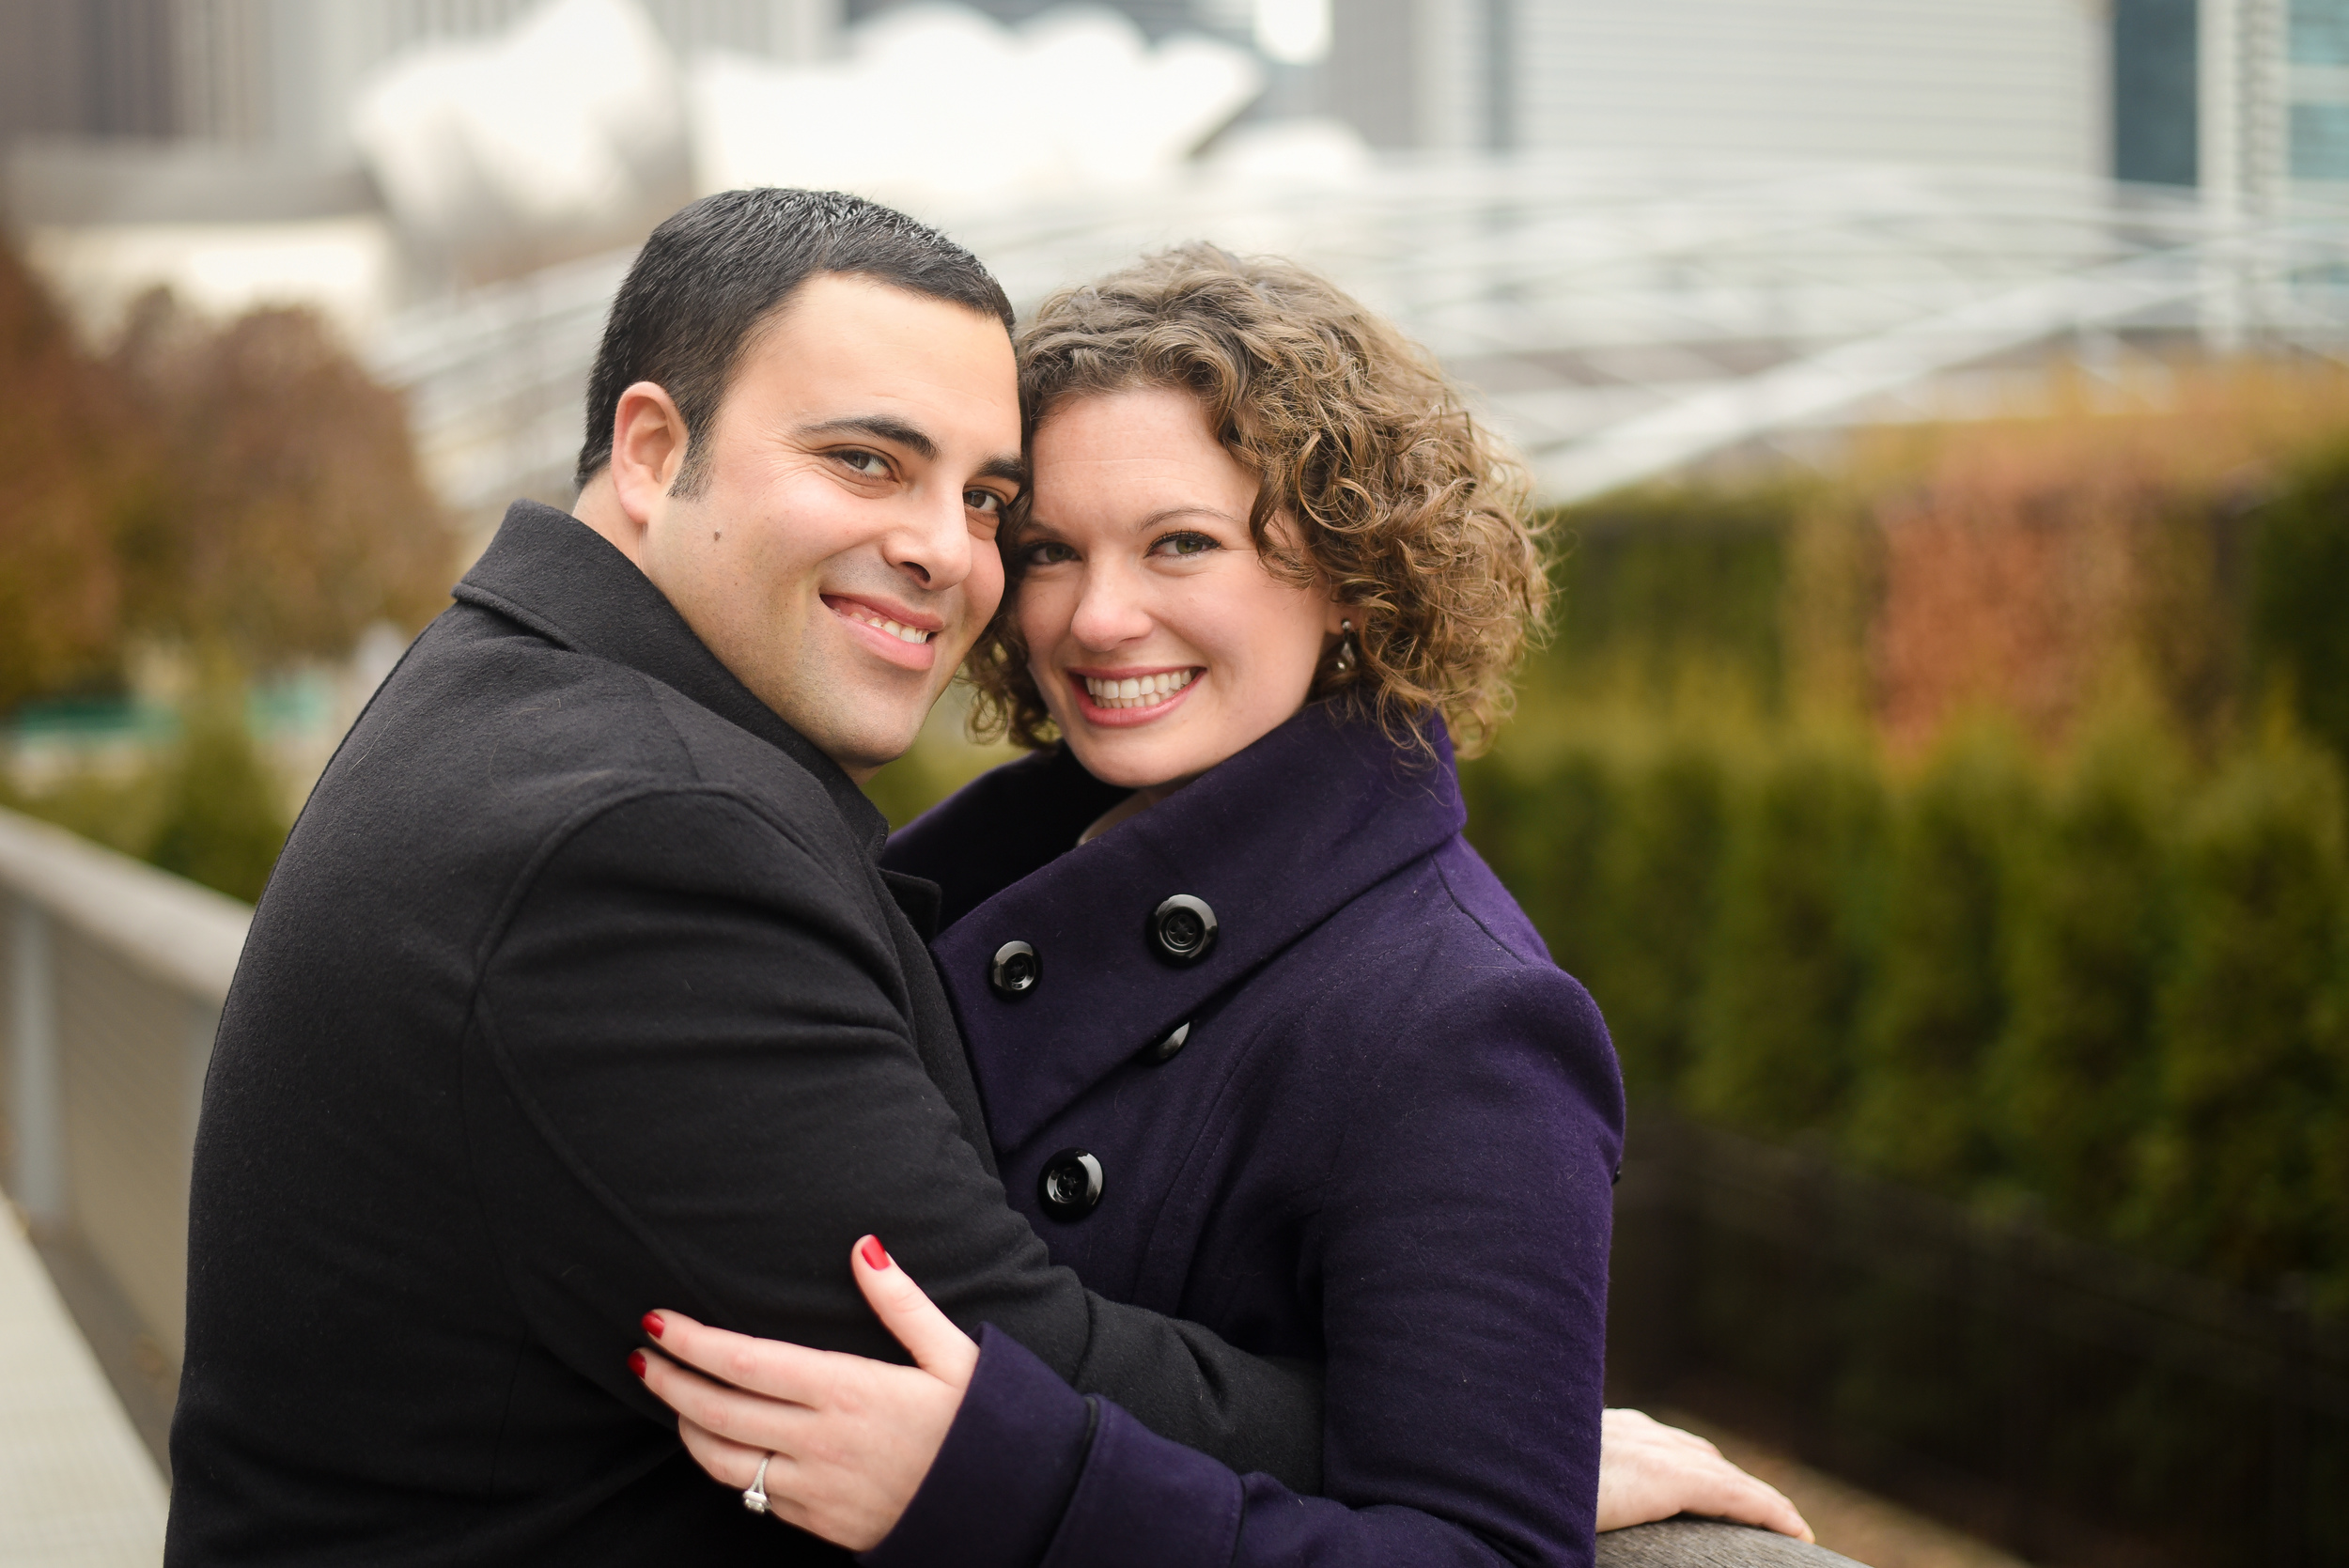 RachelAvi-Millenium-park-chicago-engagement